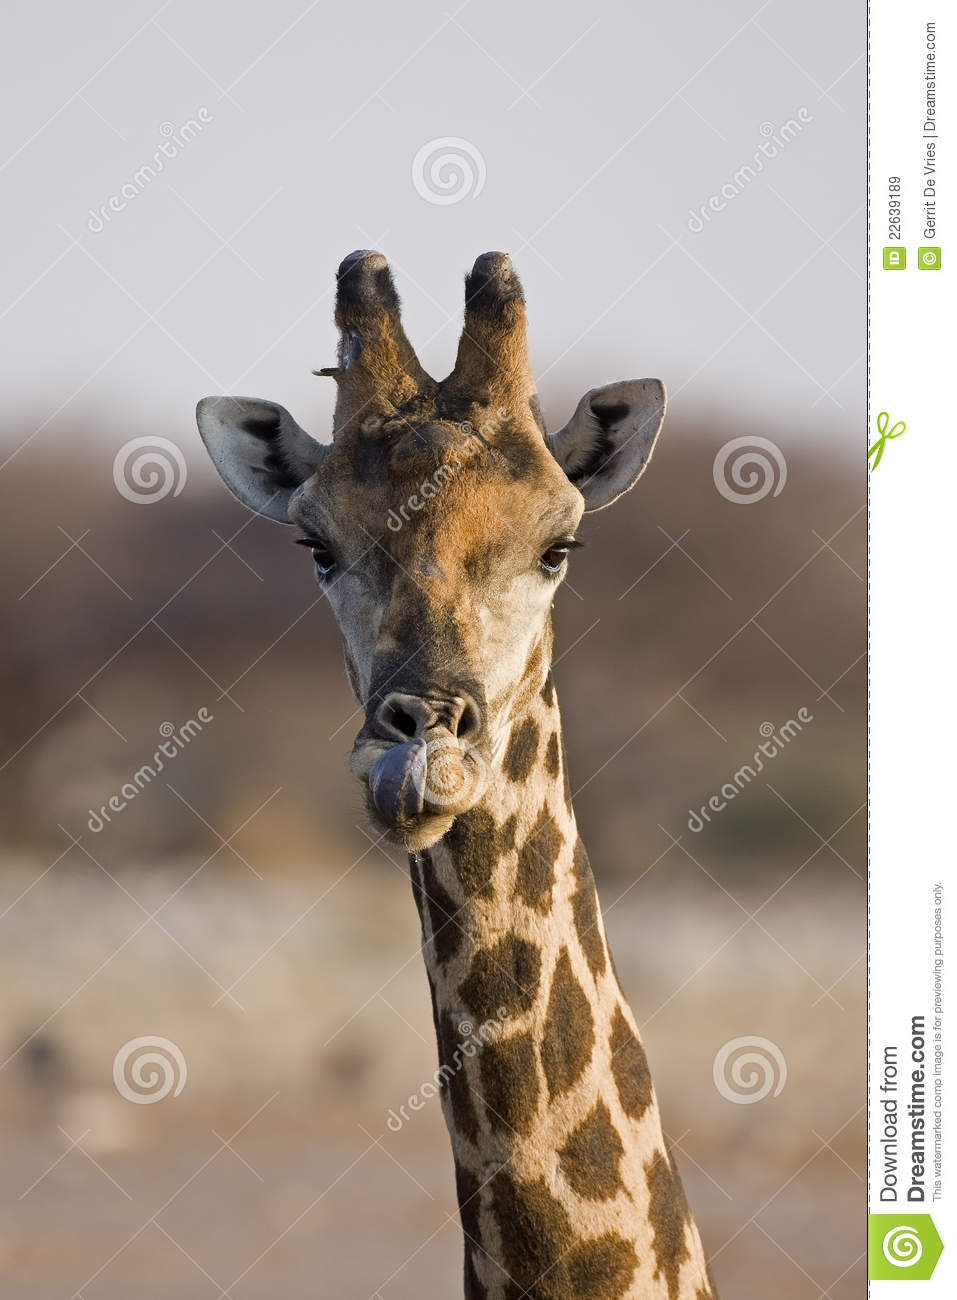 Giraffe head close up - photo#13